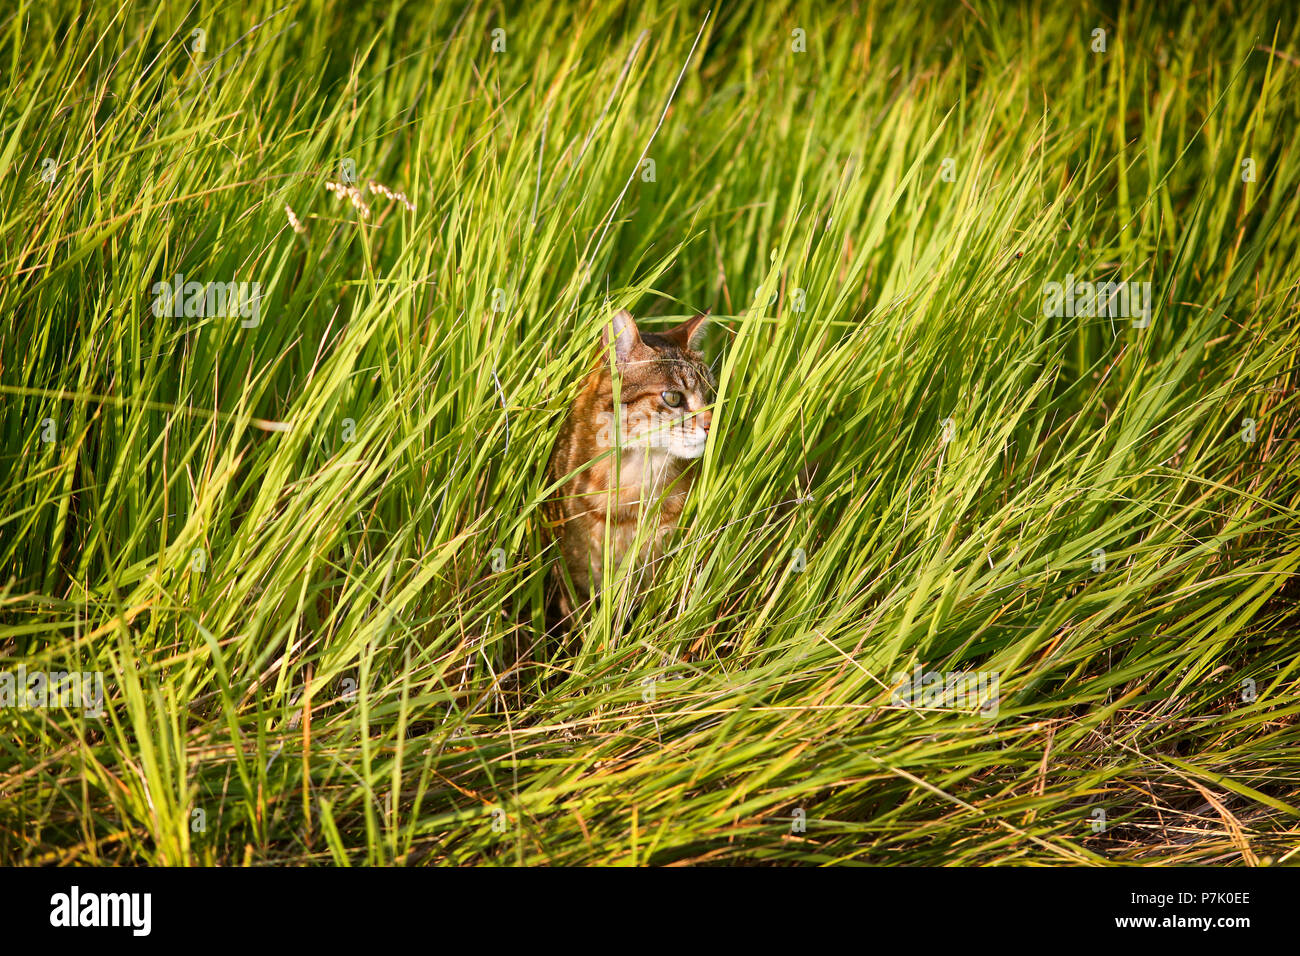 Domestic striped cat hiding in long grass. - Stock Image